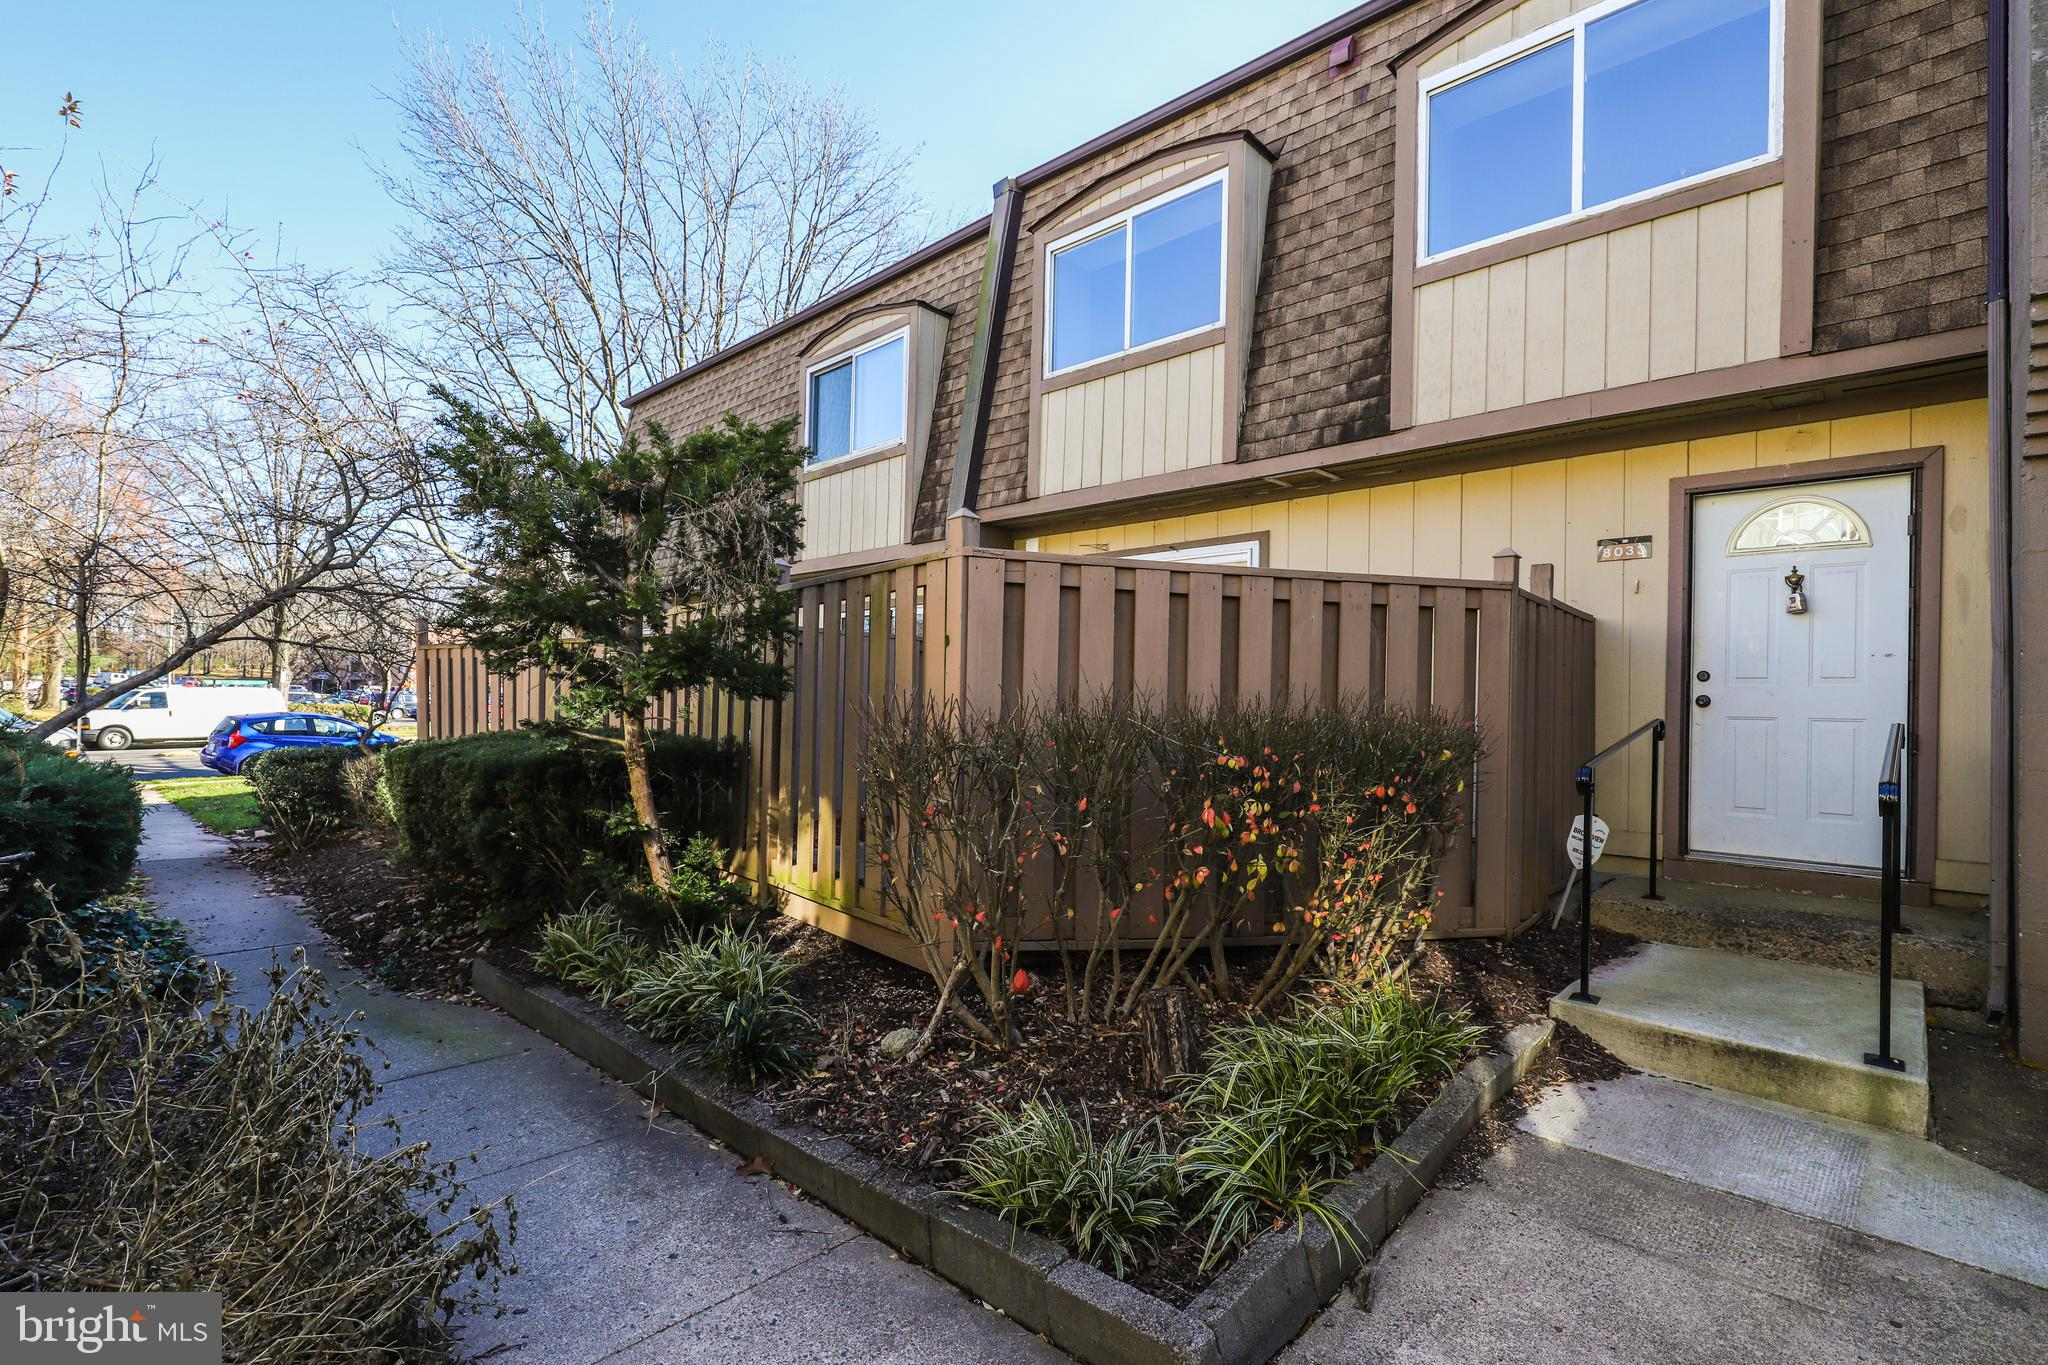 2 Level Condo Townhome featuring 2 bedrooms and 1 full and 1 half bath. Freshly painted and move-in ready!